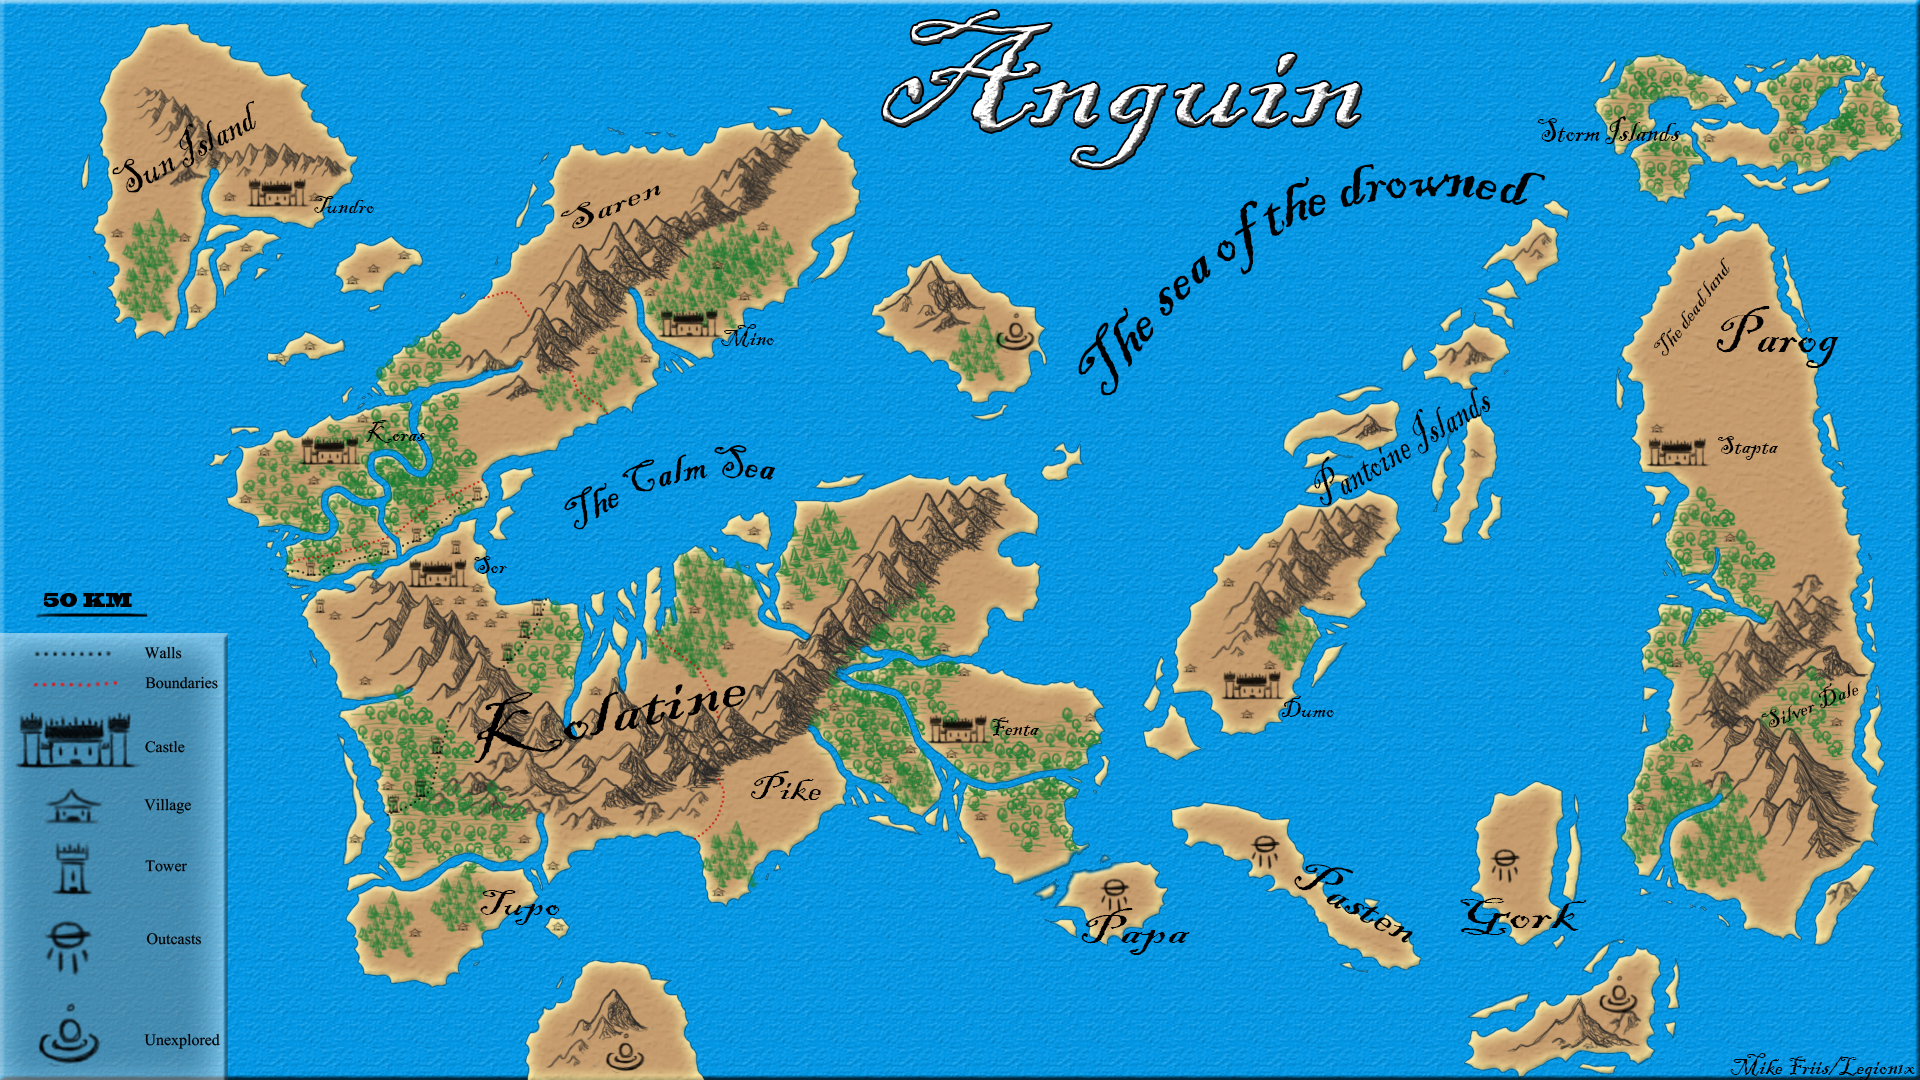 The World of Anguin by Royceedk